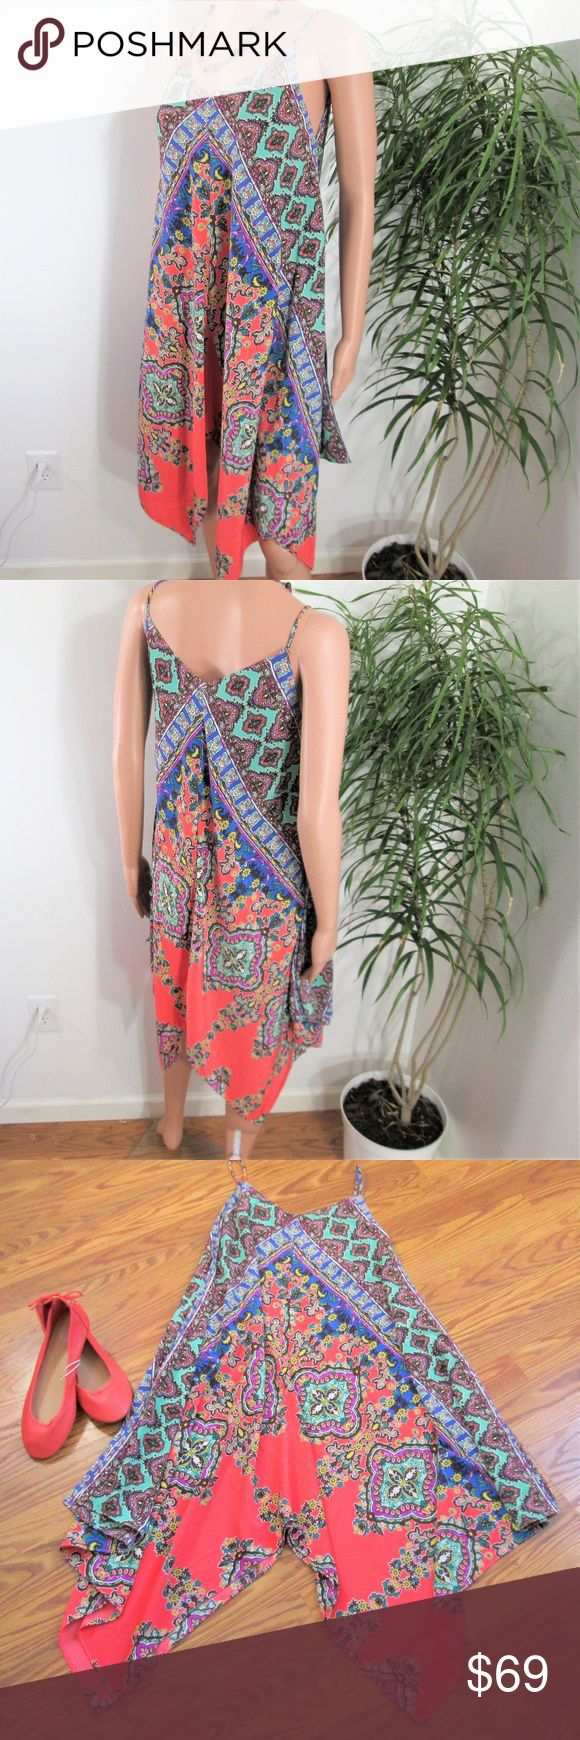 "New! Casual Couture* Silk Handkerchief Dress Pretty popover in coral, mint, blue, purple. A-line, tent, trapeze shape. Asymmetrical  point hem.  Measured flat. 16"" pit to pit. 28"" ~ 38"" long, without straps. on 5' 9'' model, 33'' x 24'' x 33.5''.  Casual Couture by Green Envelope Neiman Marcus Casual Couture Dresses"